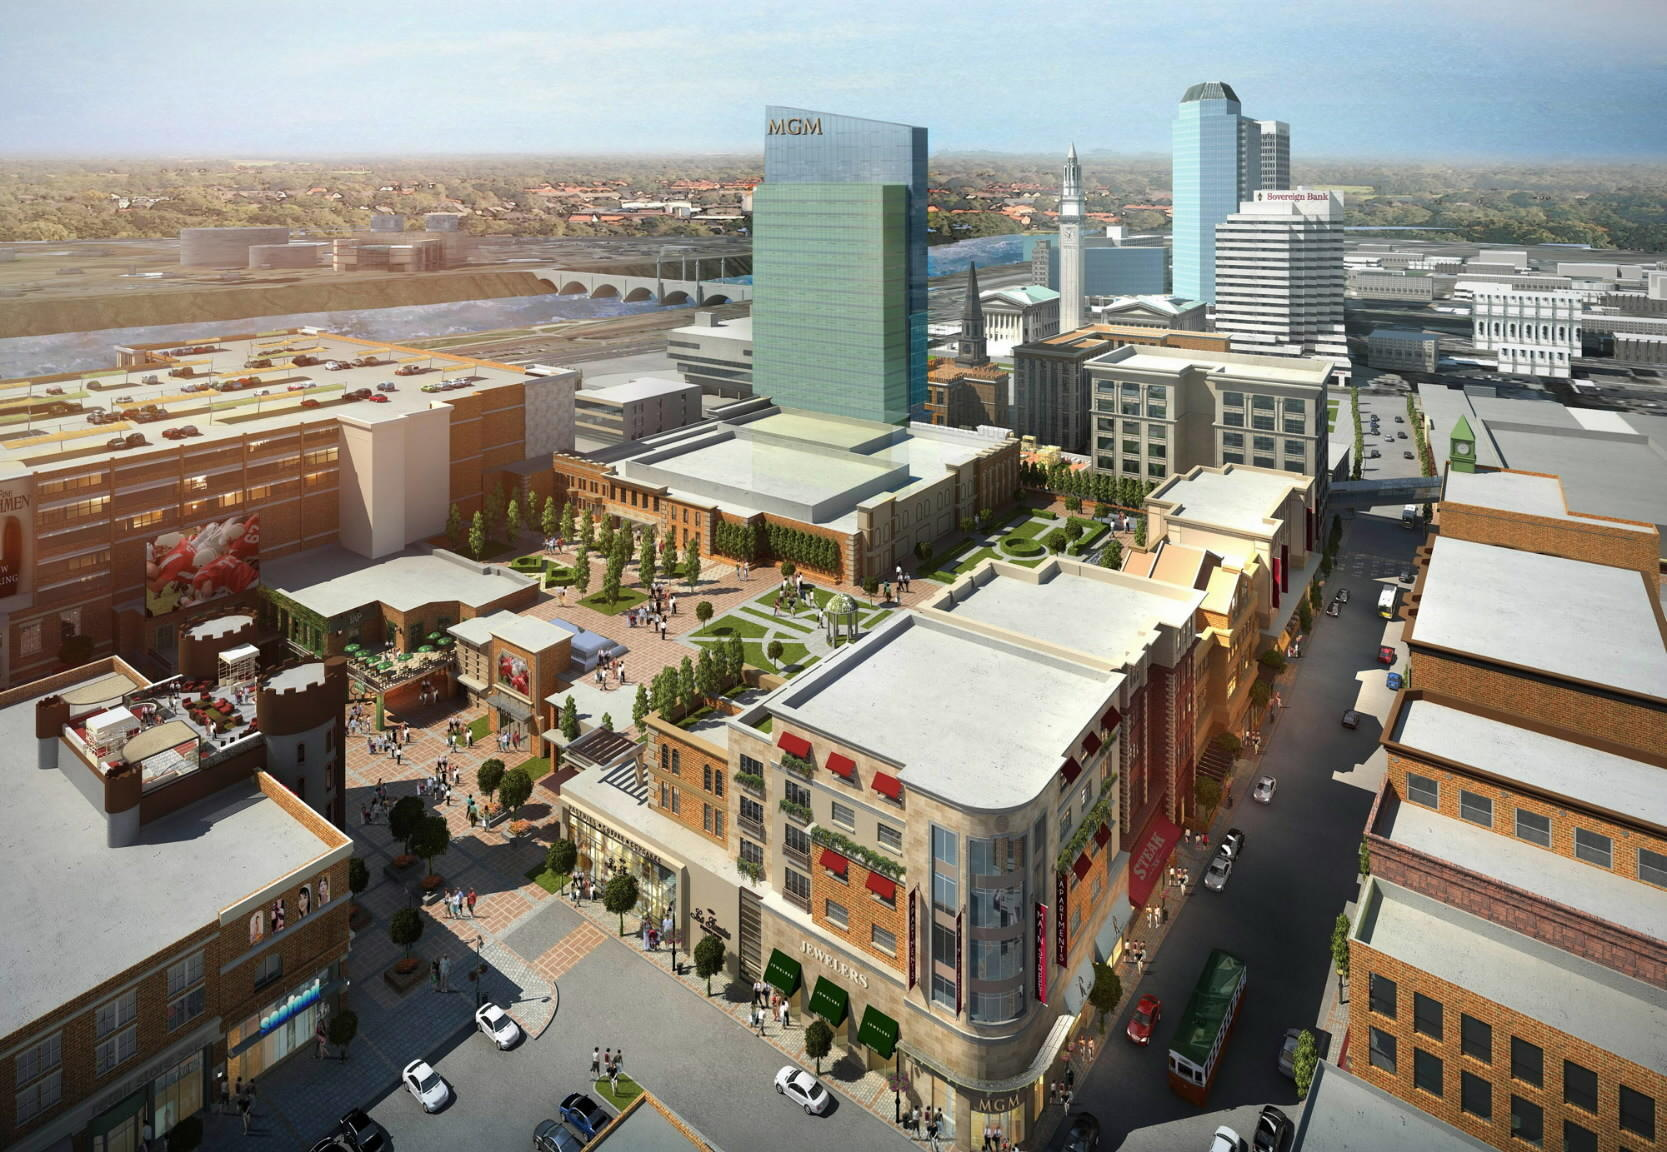 The proposed MGM casino planned for Springfield is seen in an artist's rendering.